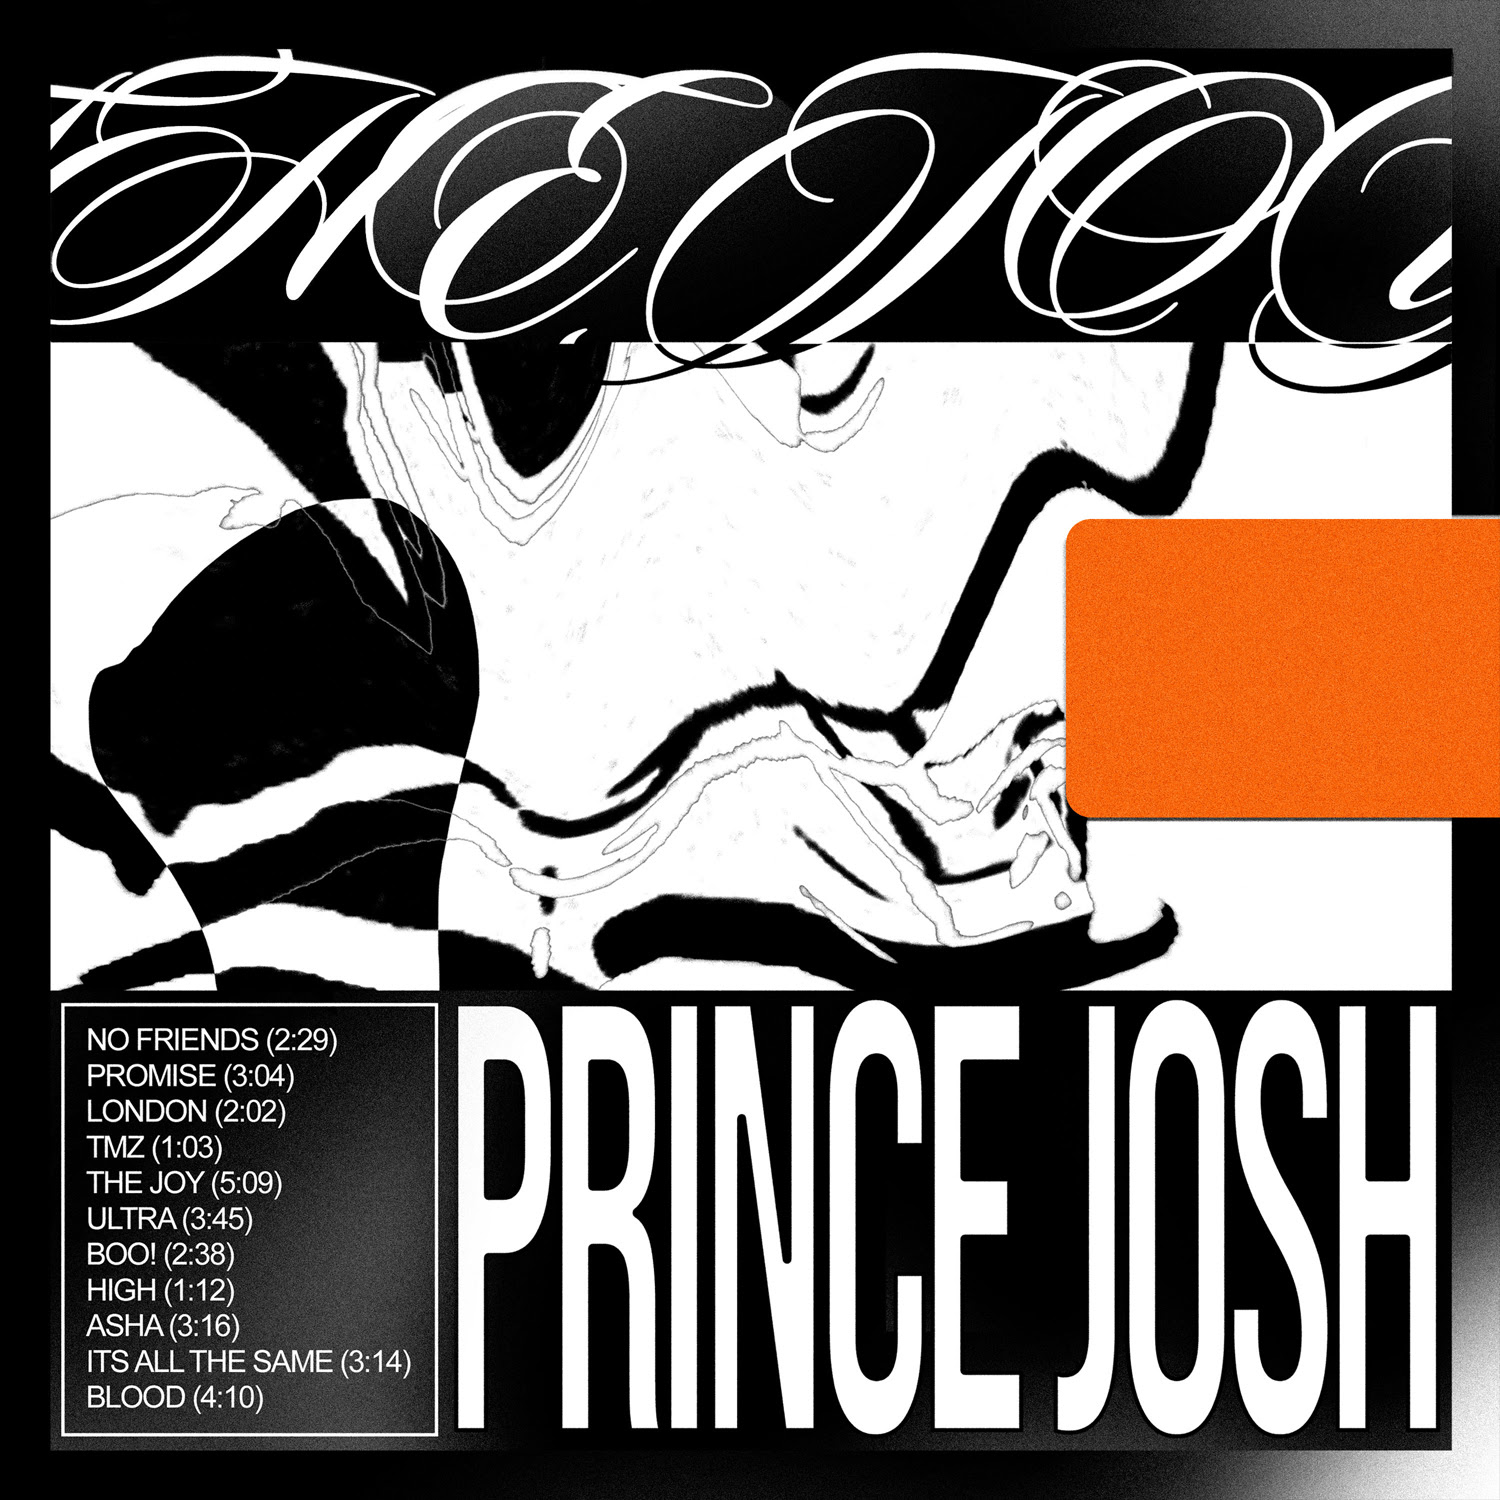 Prince Josh Tells His Story through the Voices of Strangers